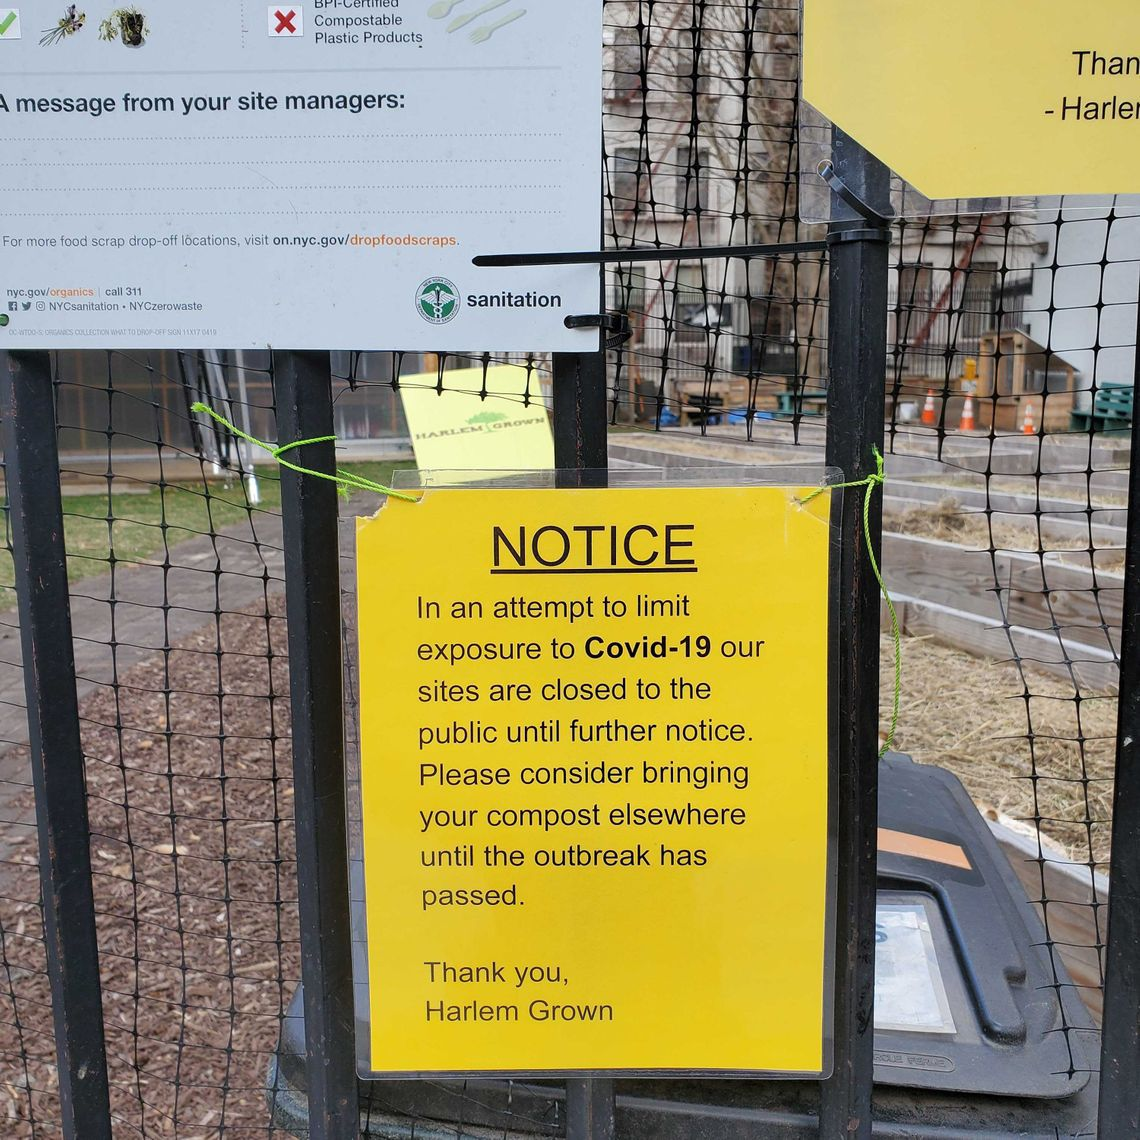 A Harlem urban farm lets community members know they can't provide services while the coronavirus spreads.